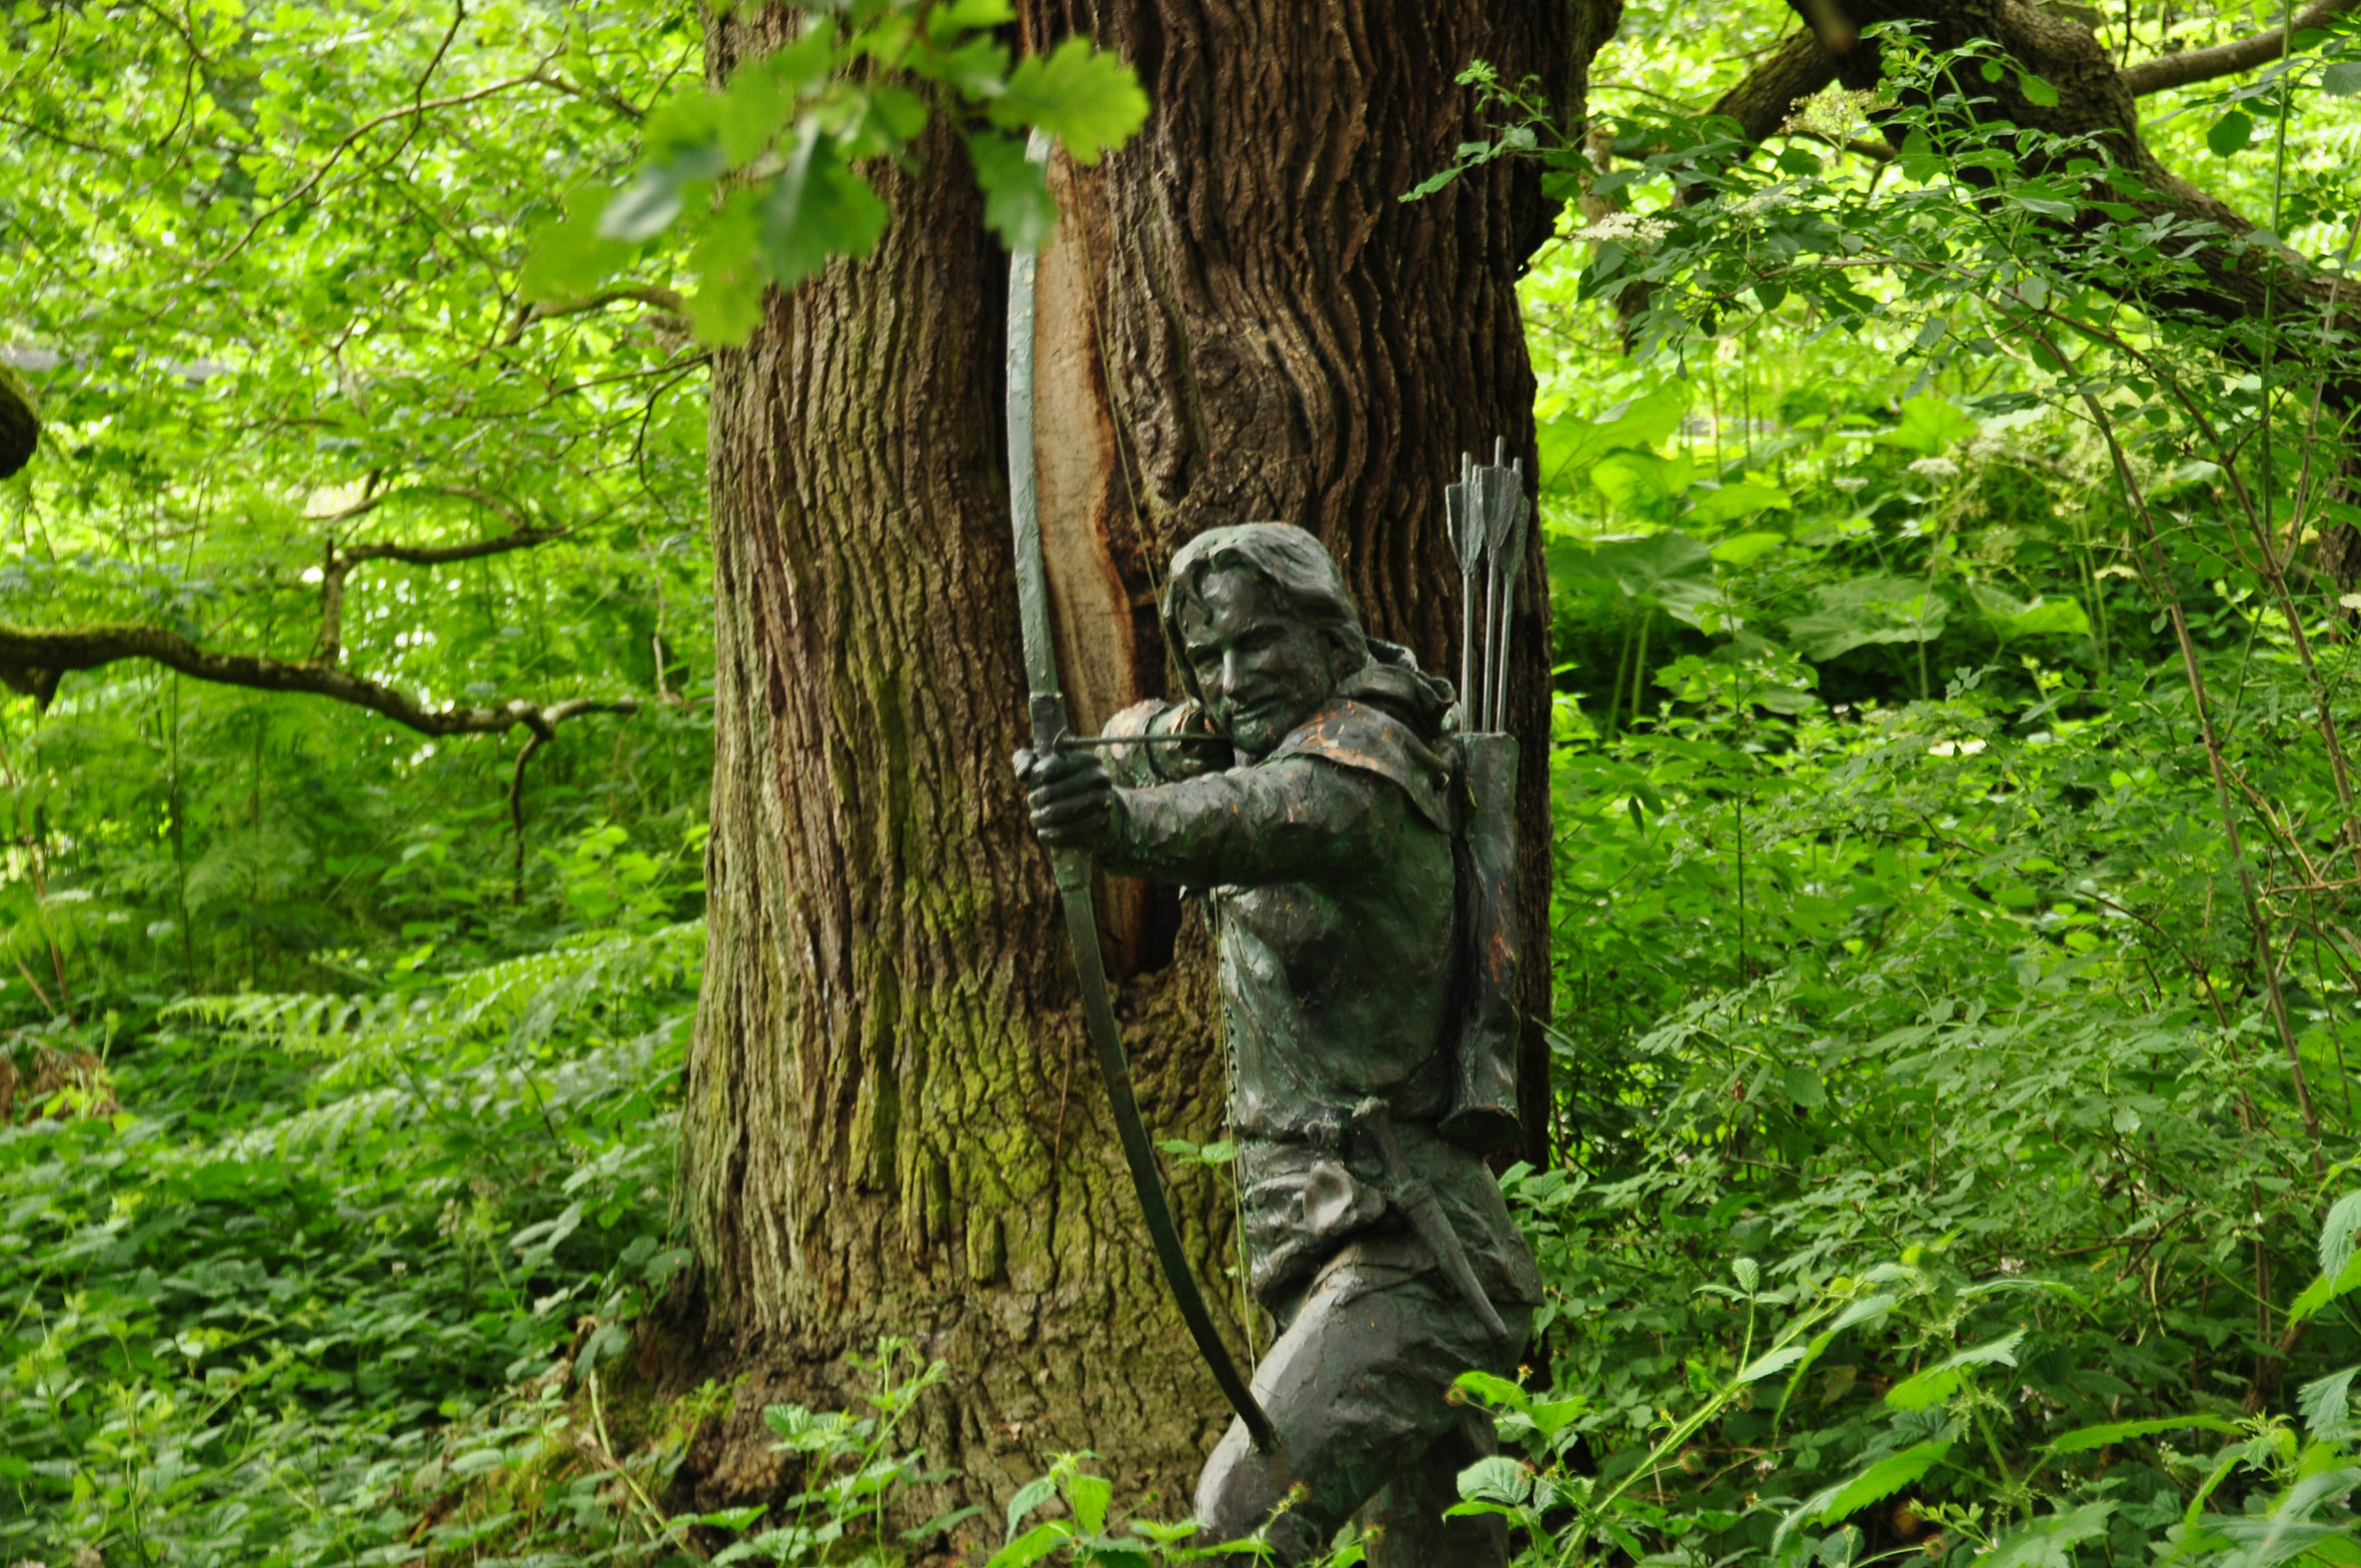 2020-02/1582621313_robin-hood-statue-in-sherwood-forest-nottinghamshire-uk-credit-nilfanion